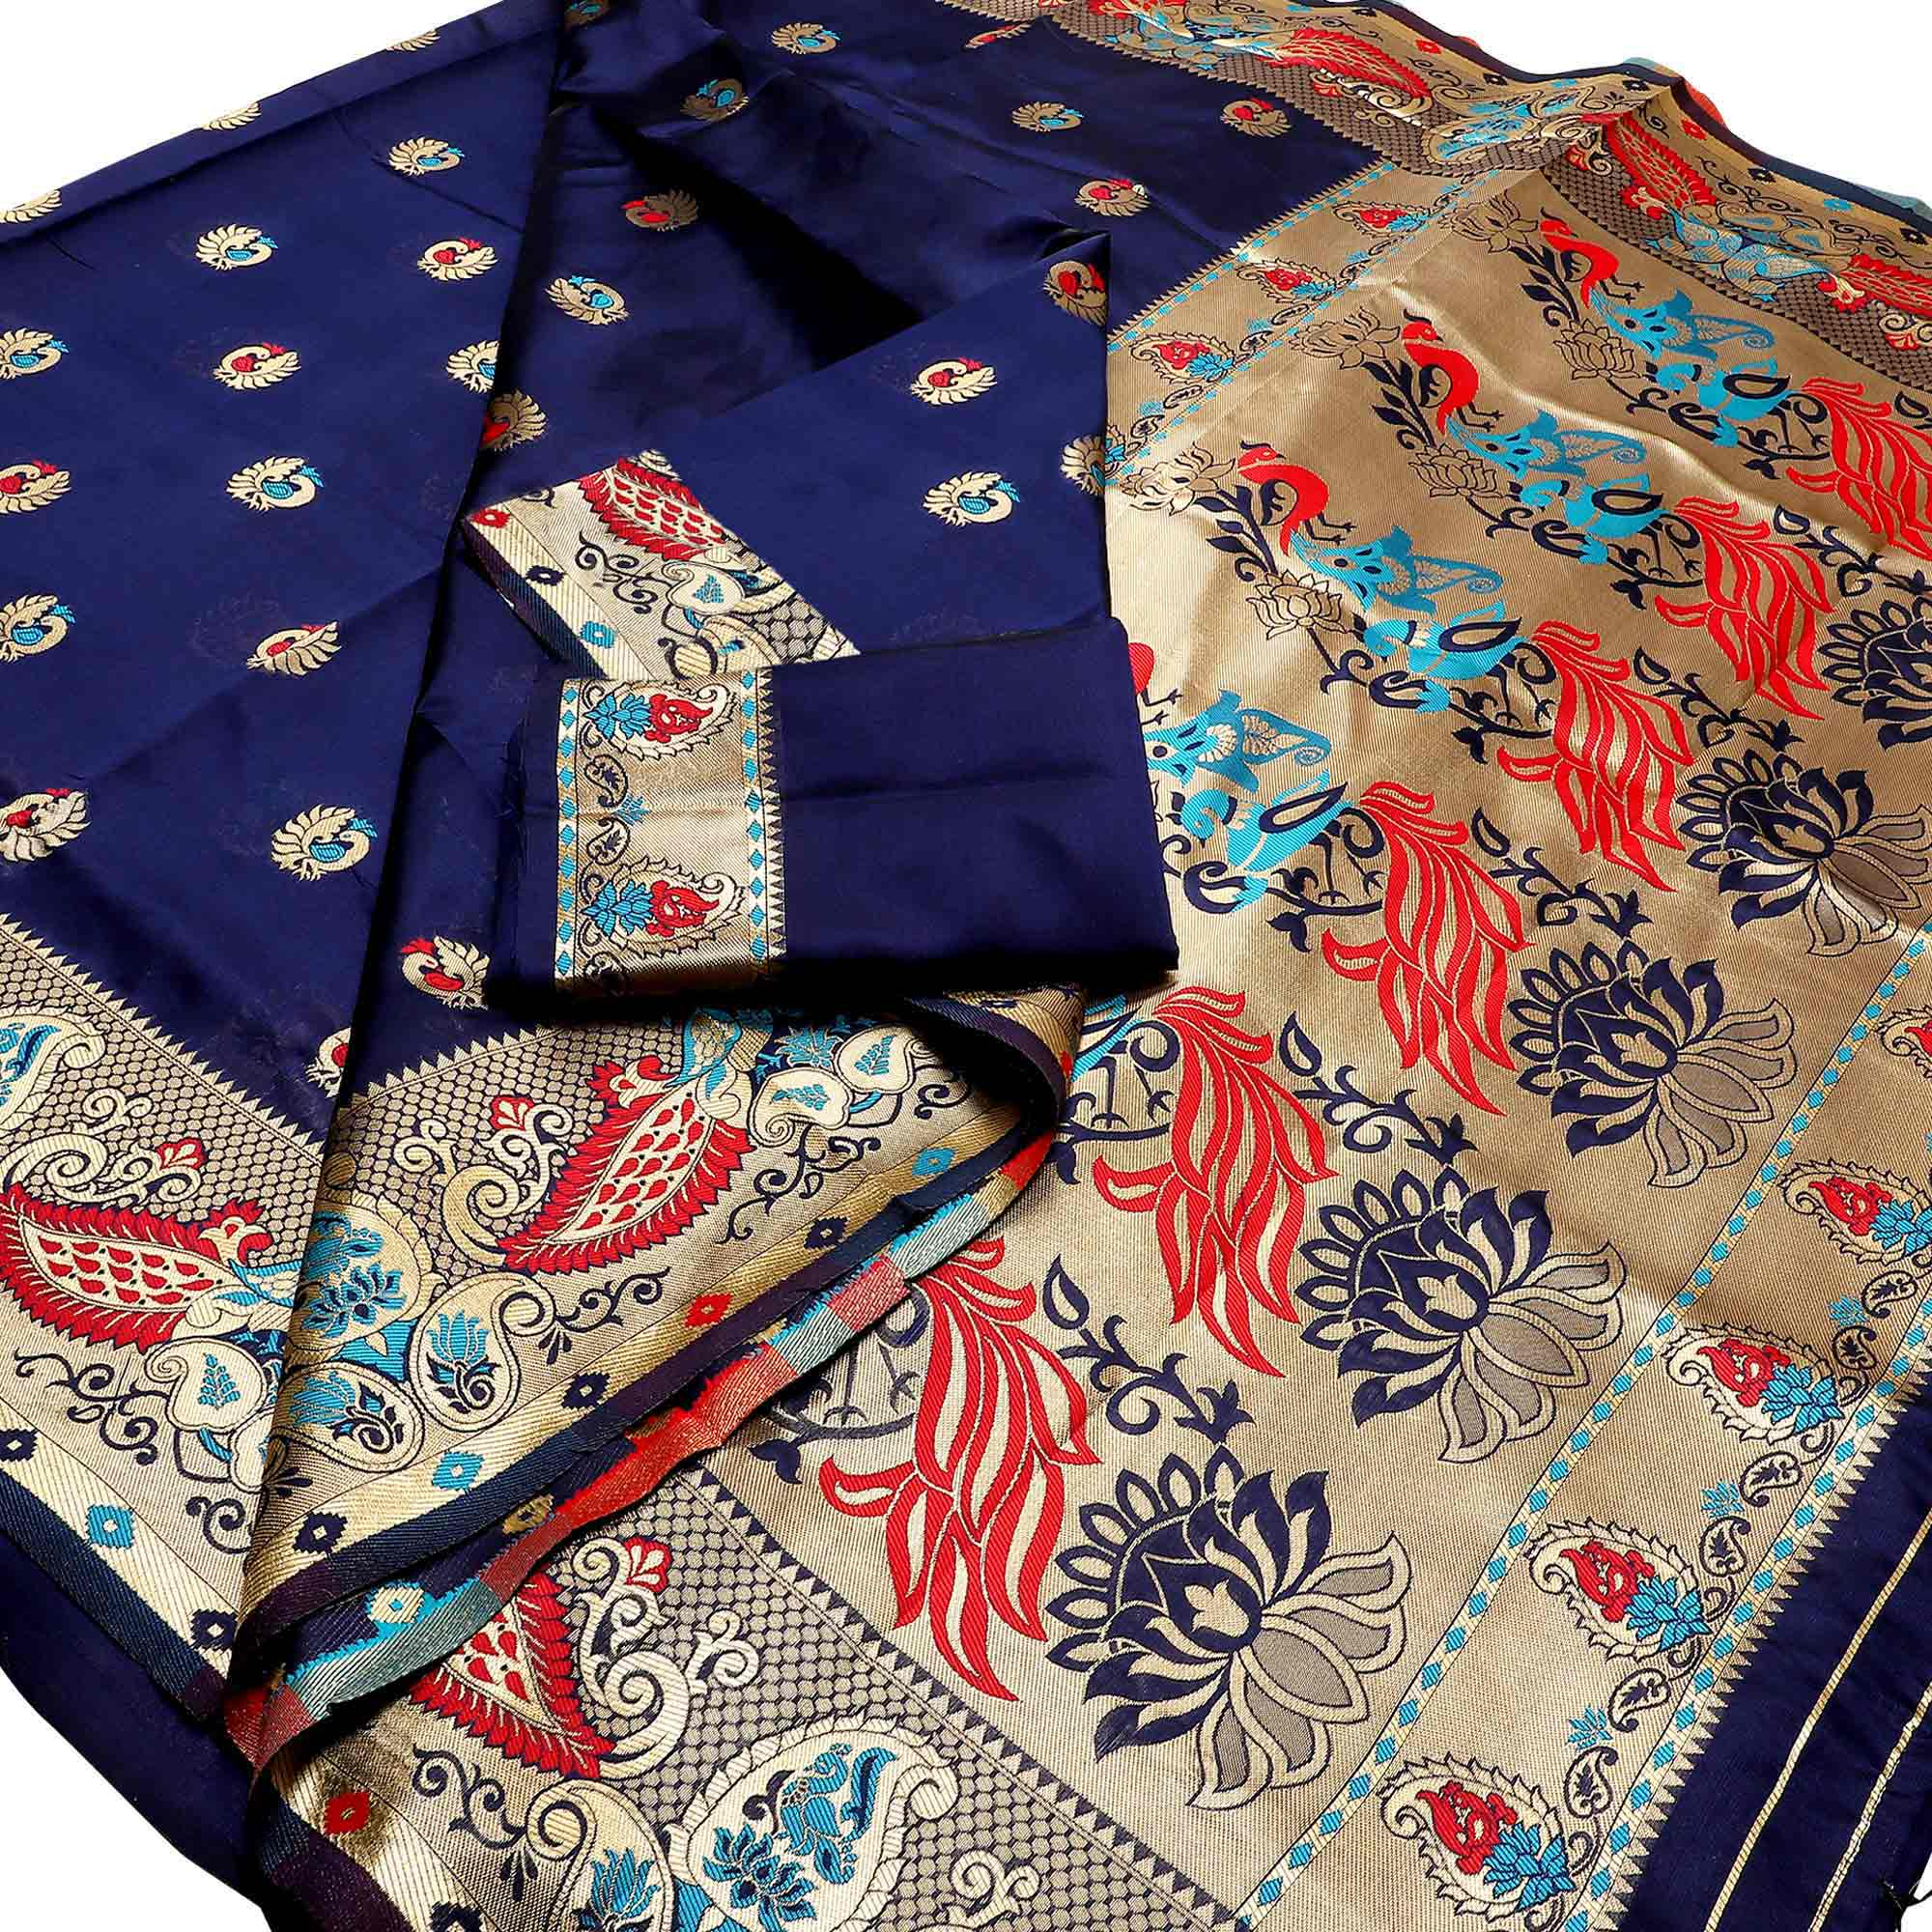 Energetic Festive Wear Woven Banarasi Silk Saree - Pack of 3